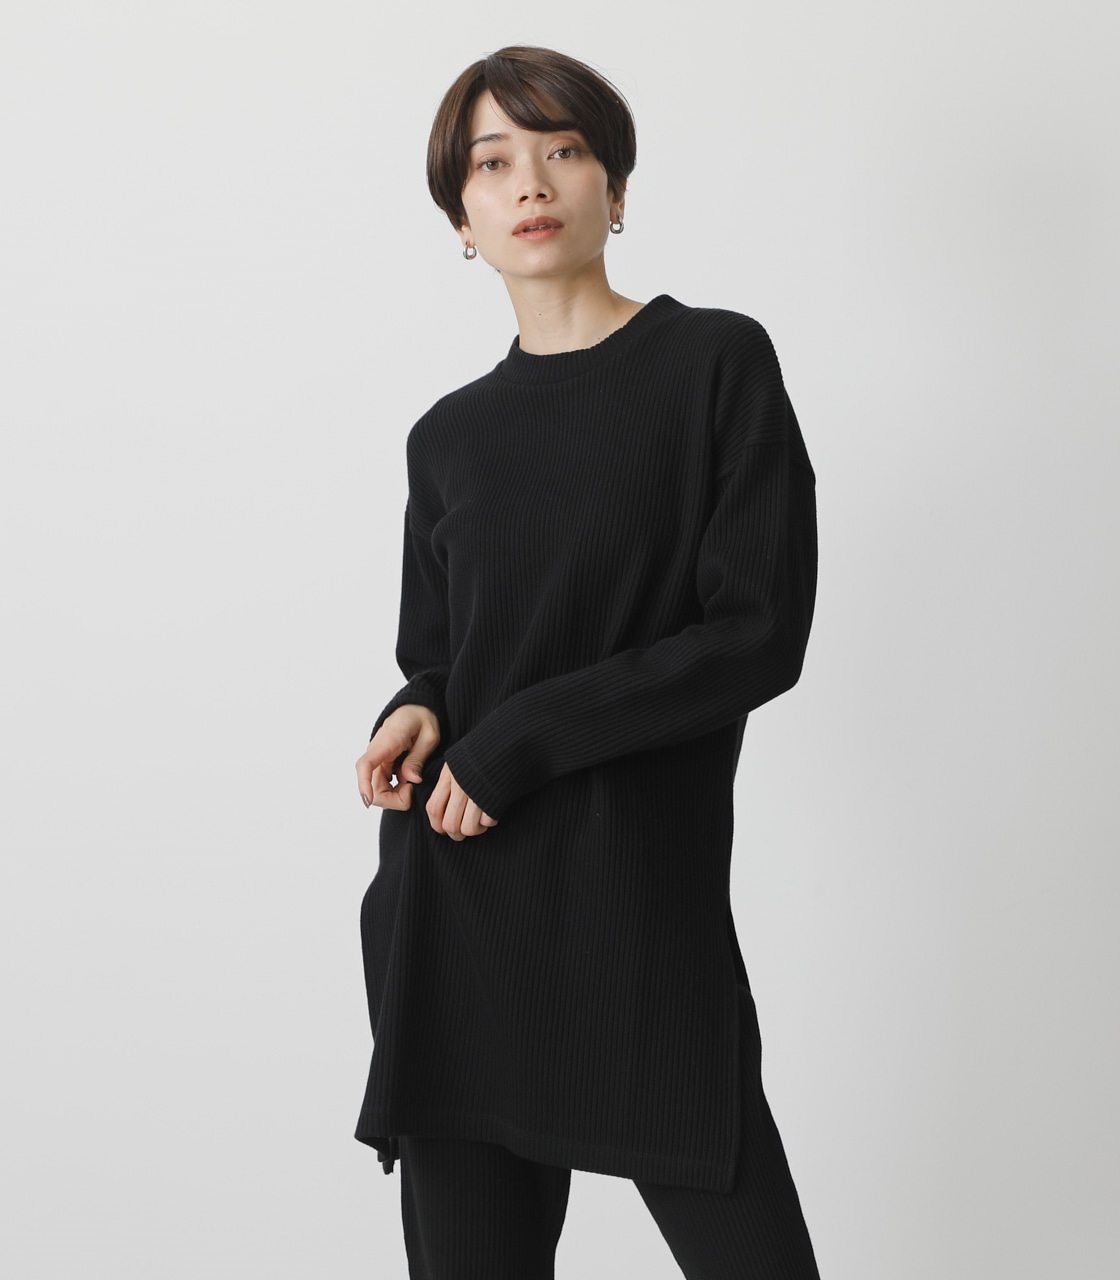 T/H SIDE SLIT LONG TOPS/T/Hサイドスリットロングトップス 詳細画像 BLK 1